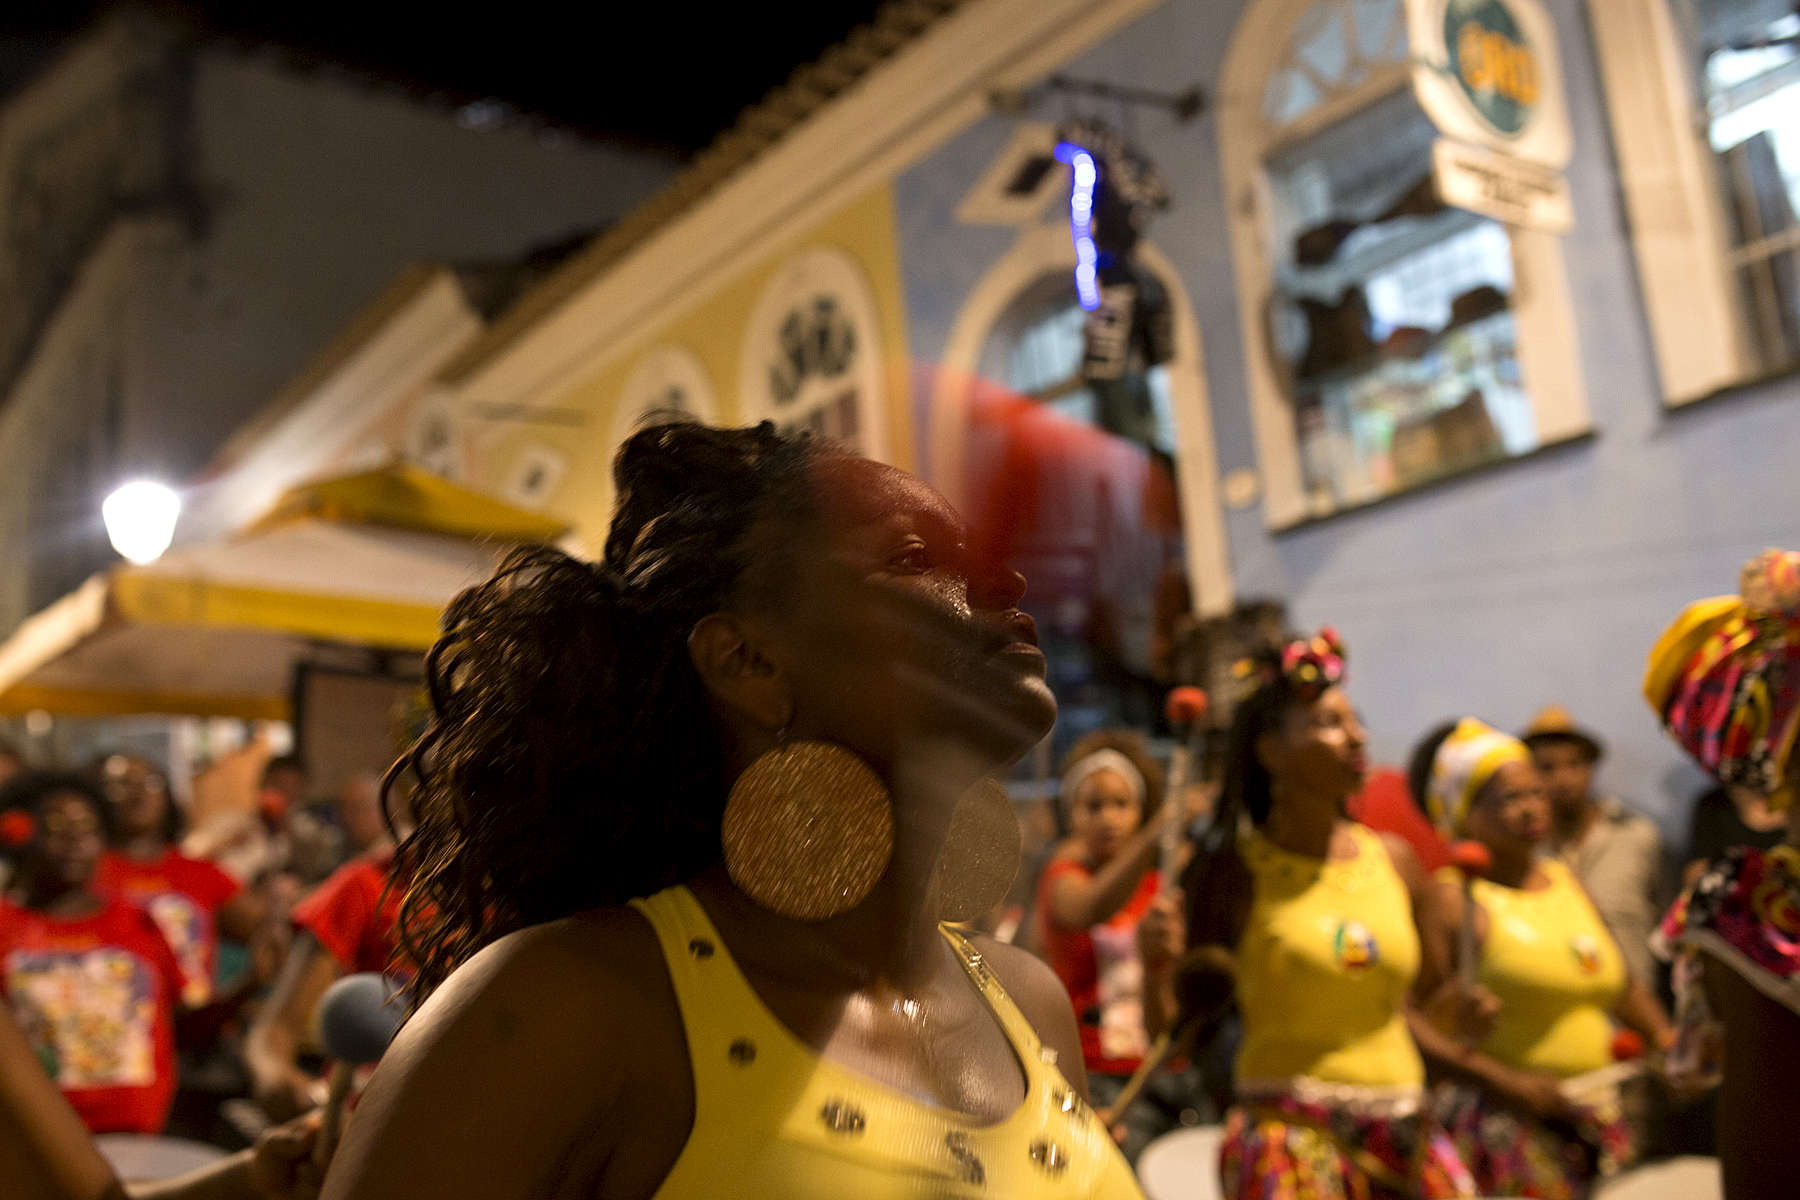 Marina de Oliveira Santos performs with the Didá band on the street outside Project Didá in Salvador's historic neighborhood, Pelourinho.